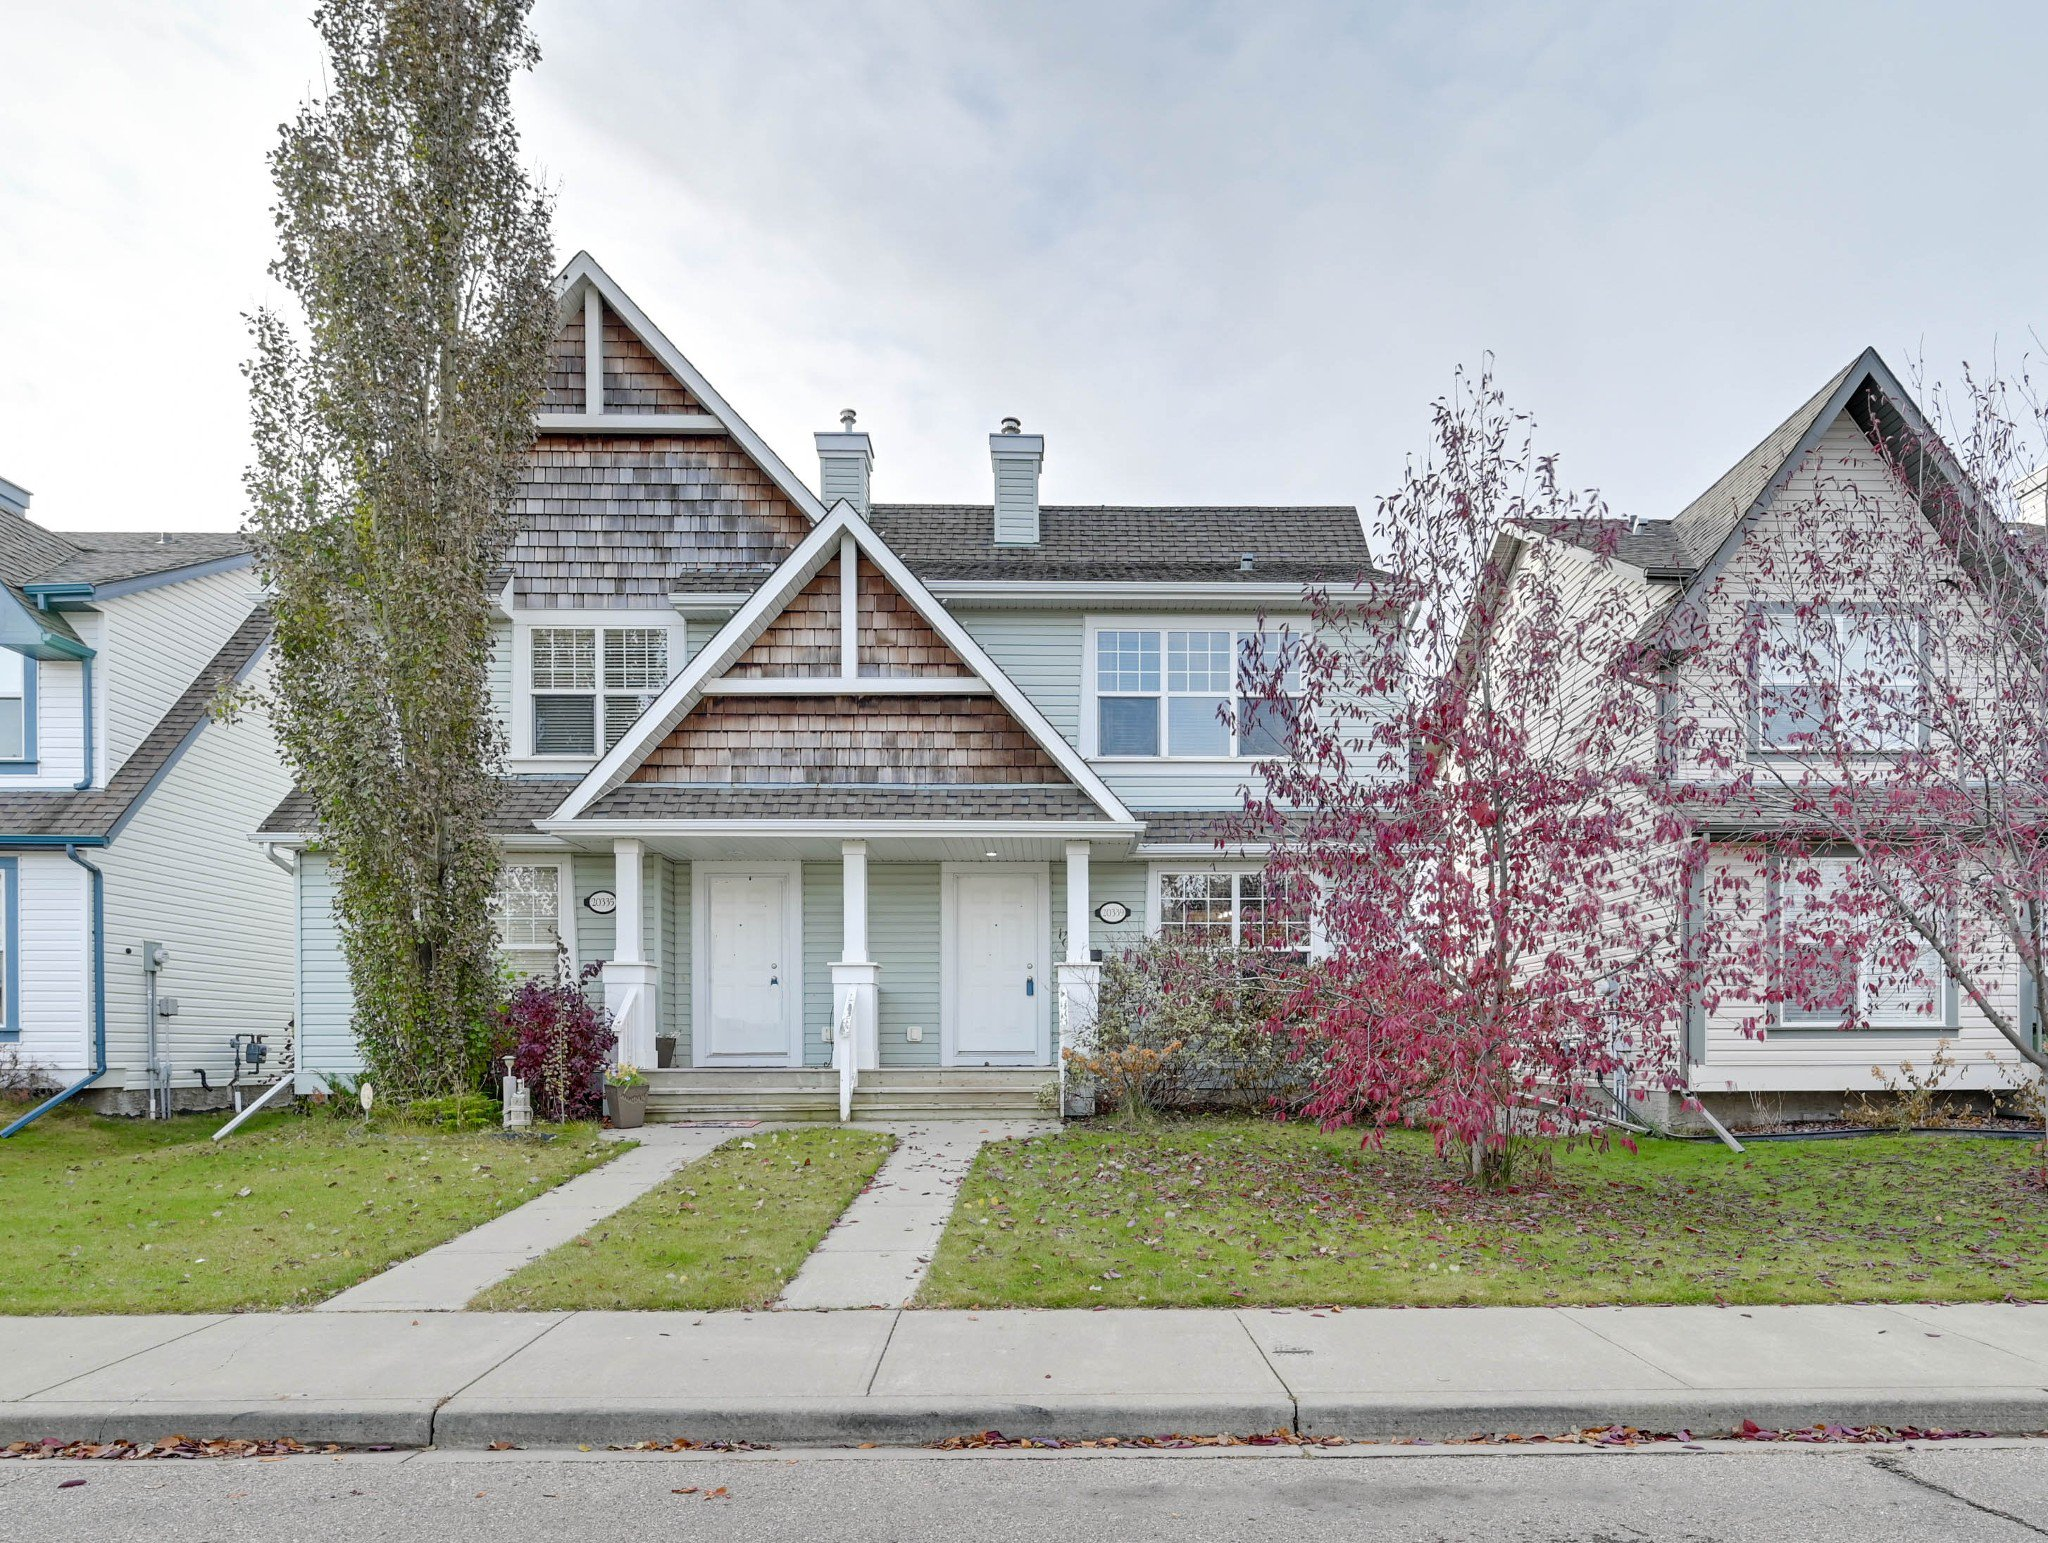 Main Photo: 20339 - 56 Avenue in Edmonton: Hamptons House Half Duplex for sale : MLS®# E4177430